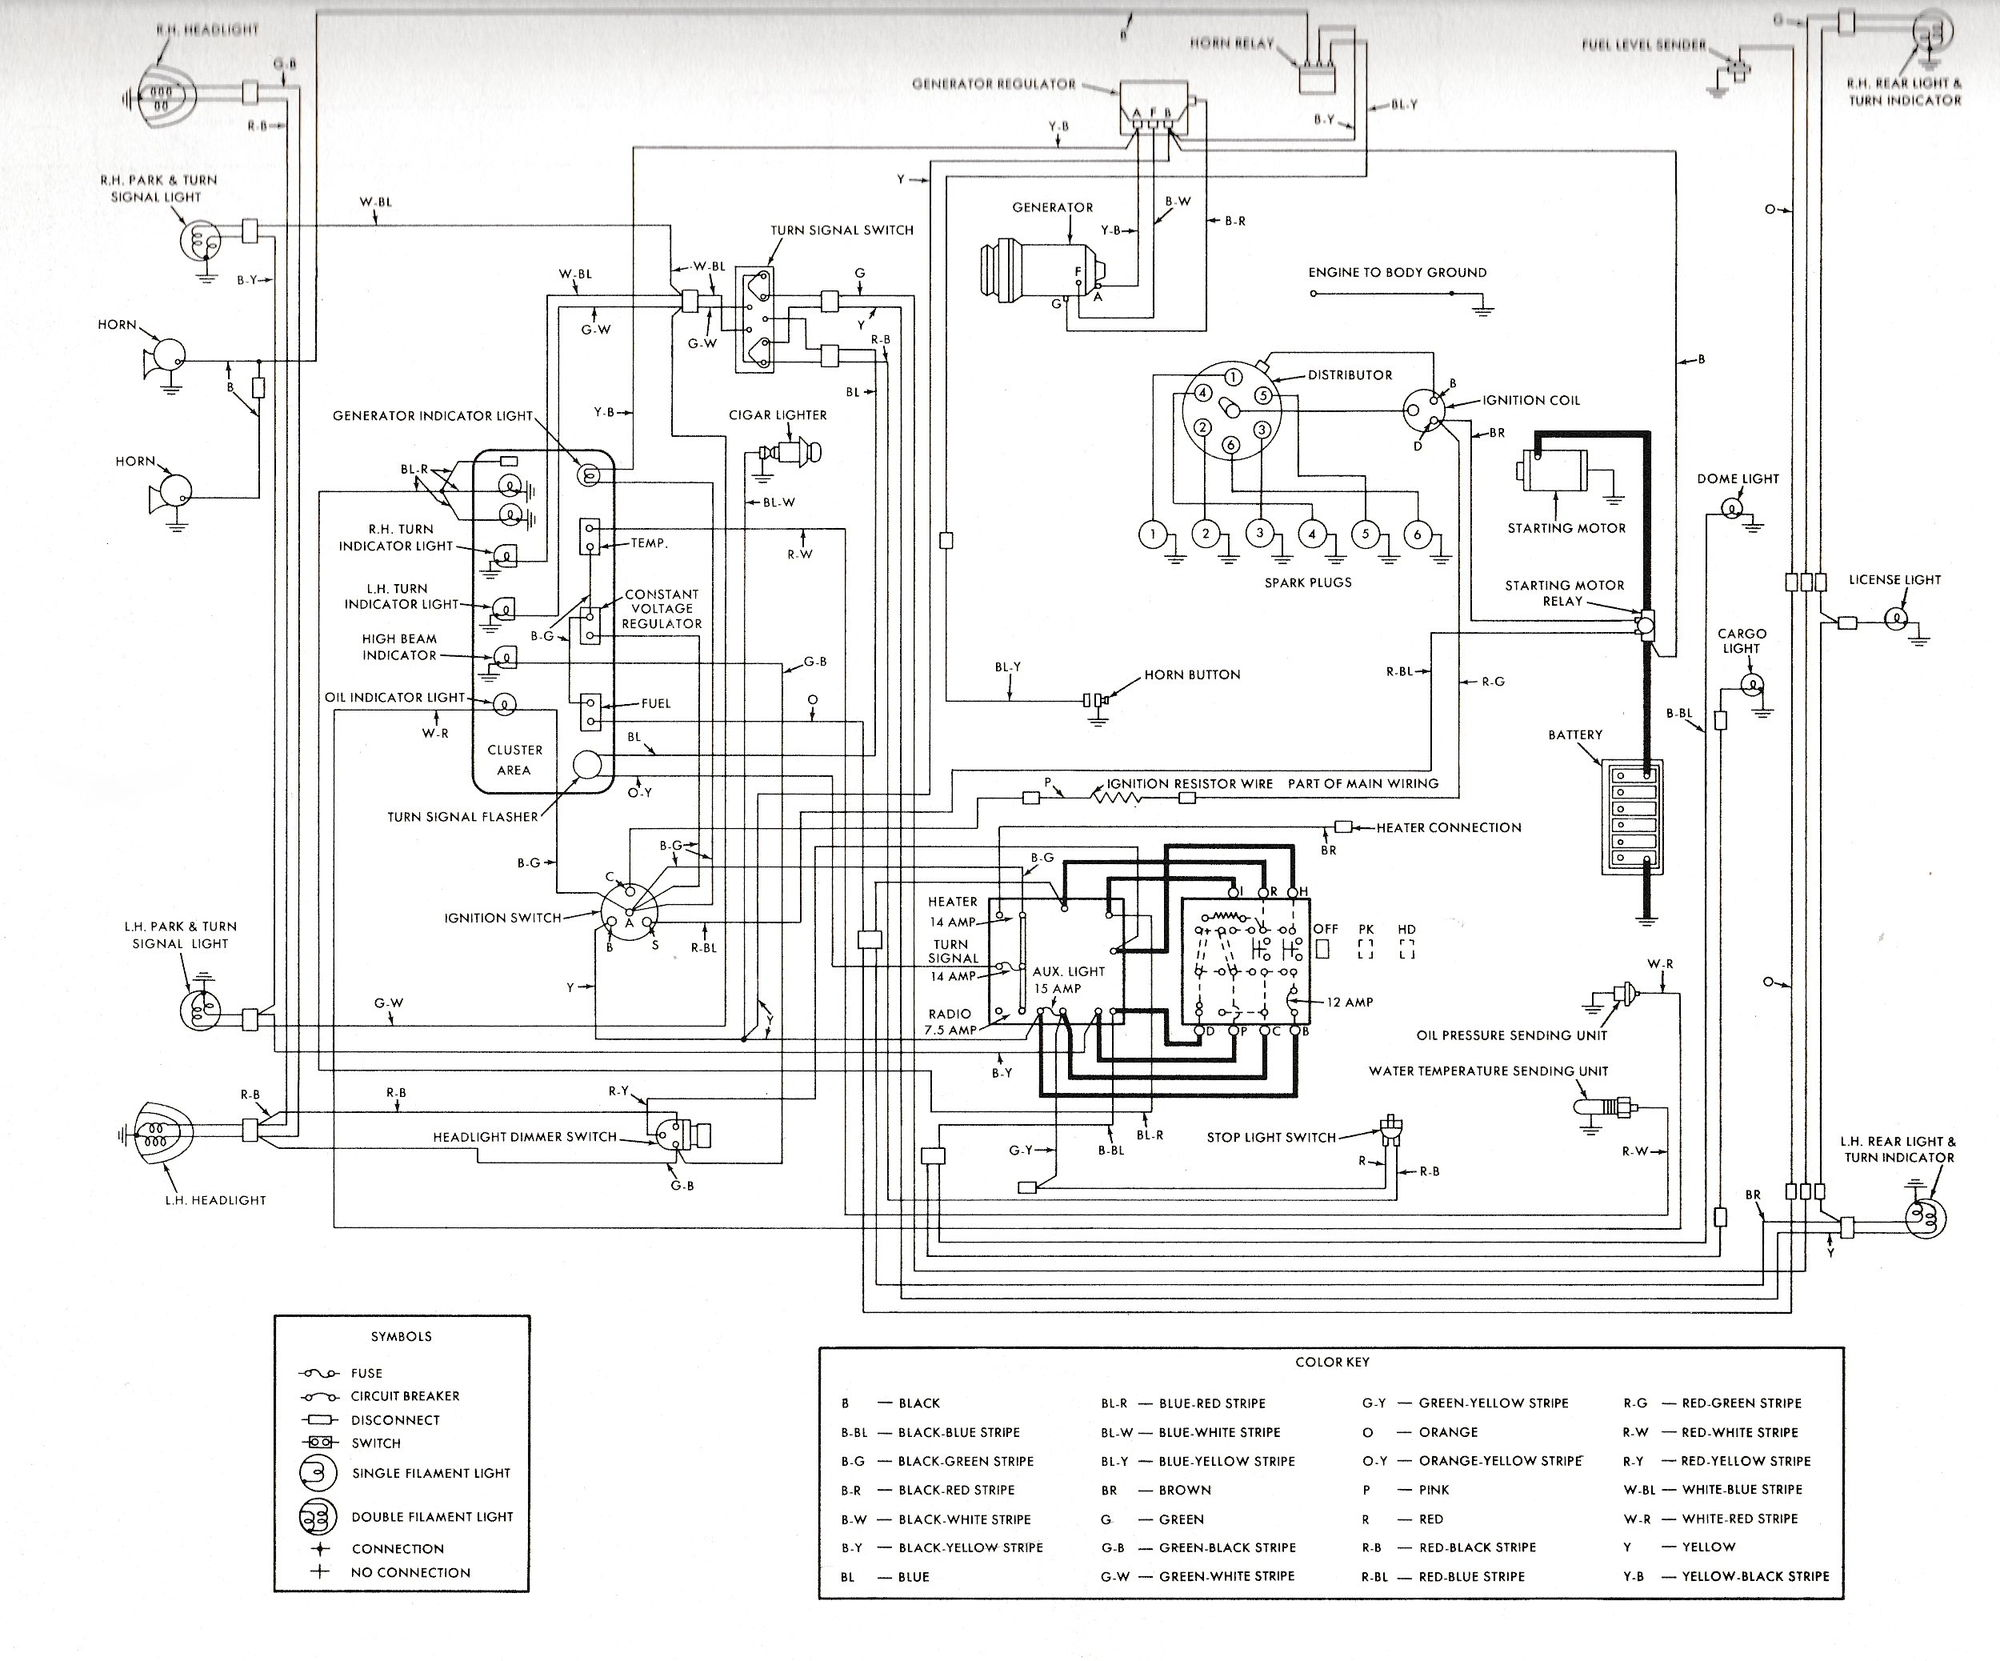 1986 Ford F 350 Wiring Diagram